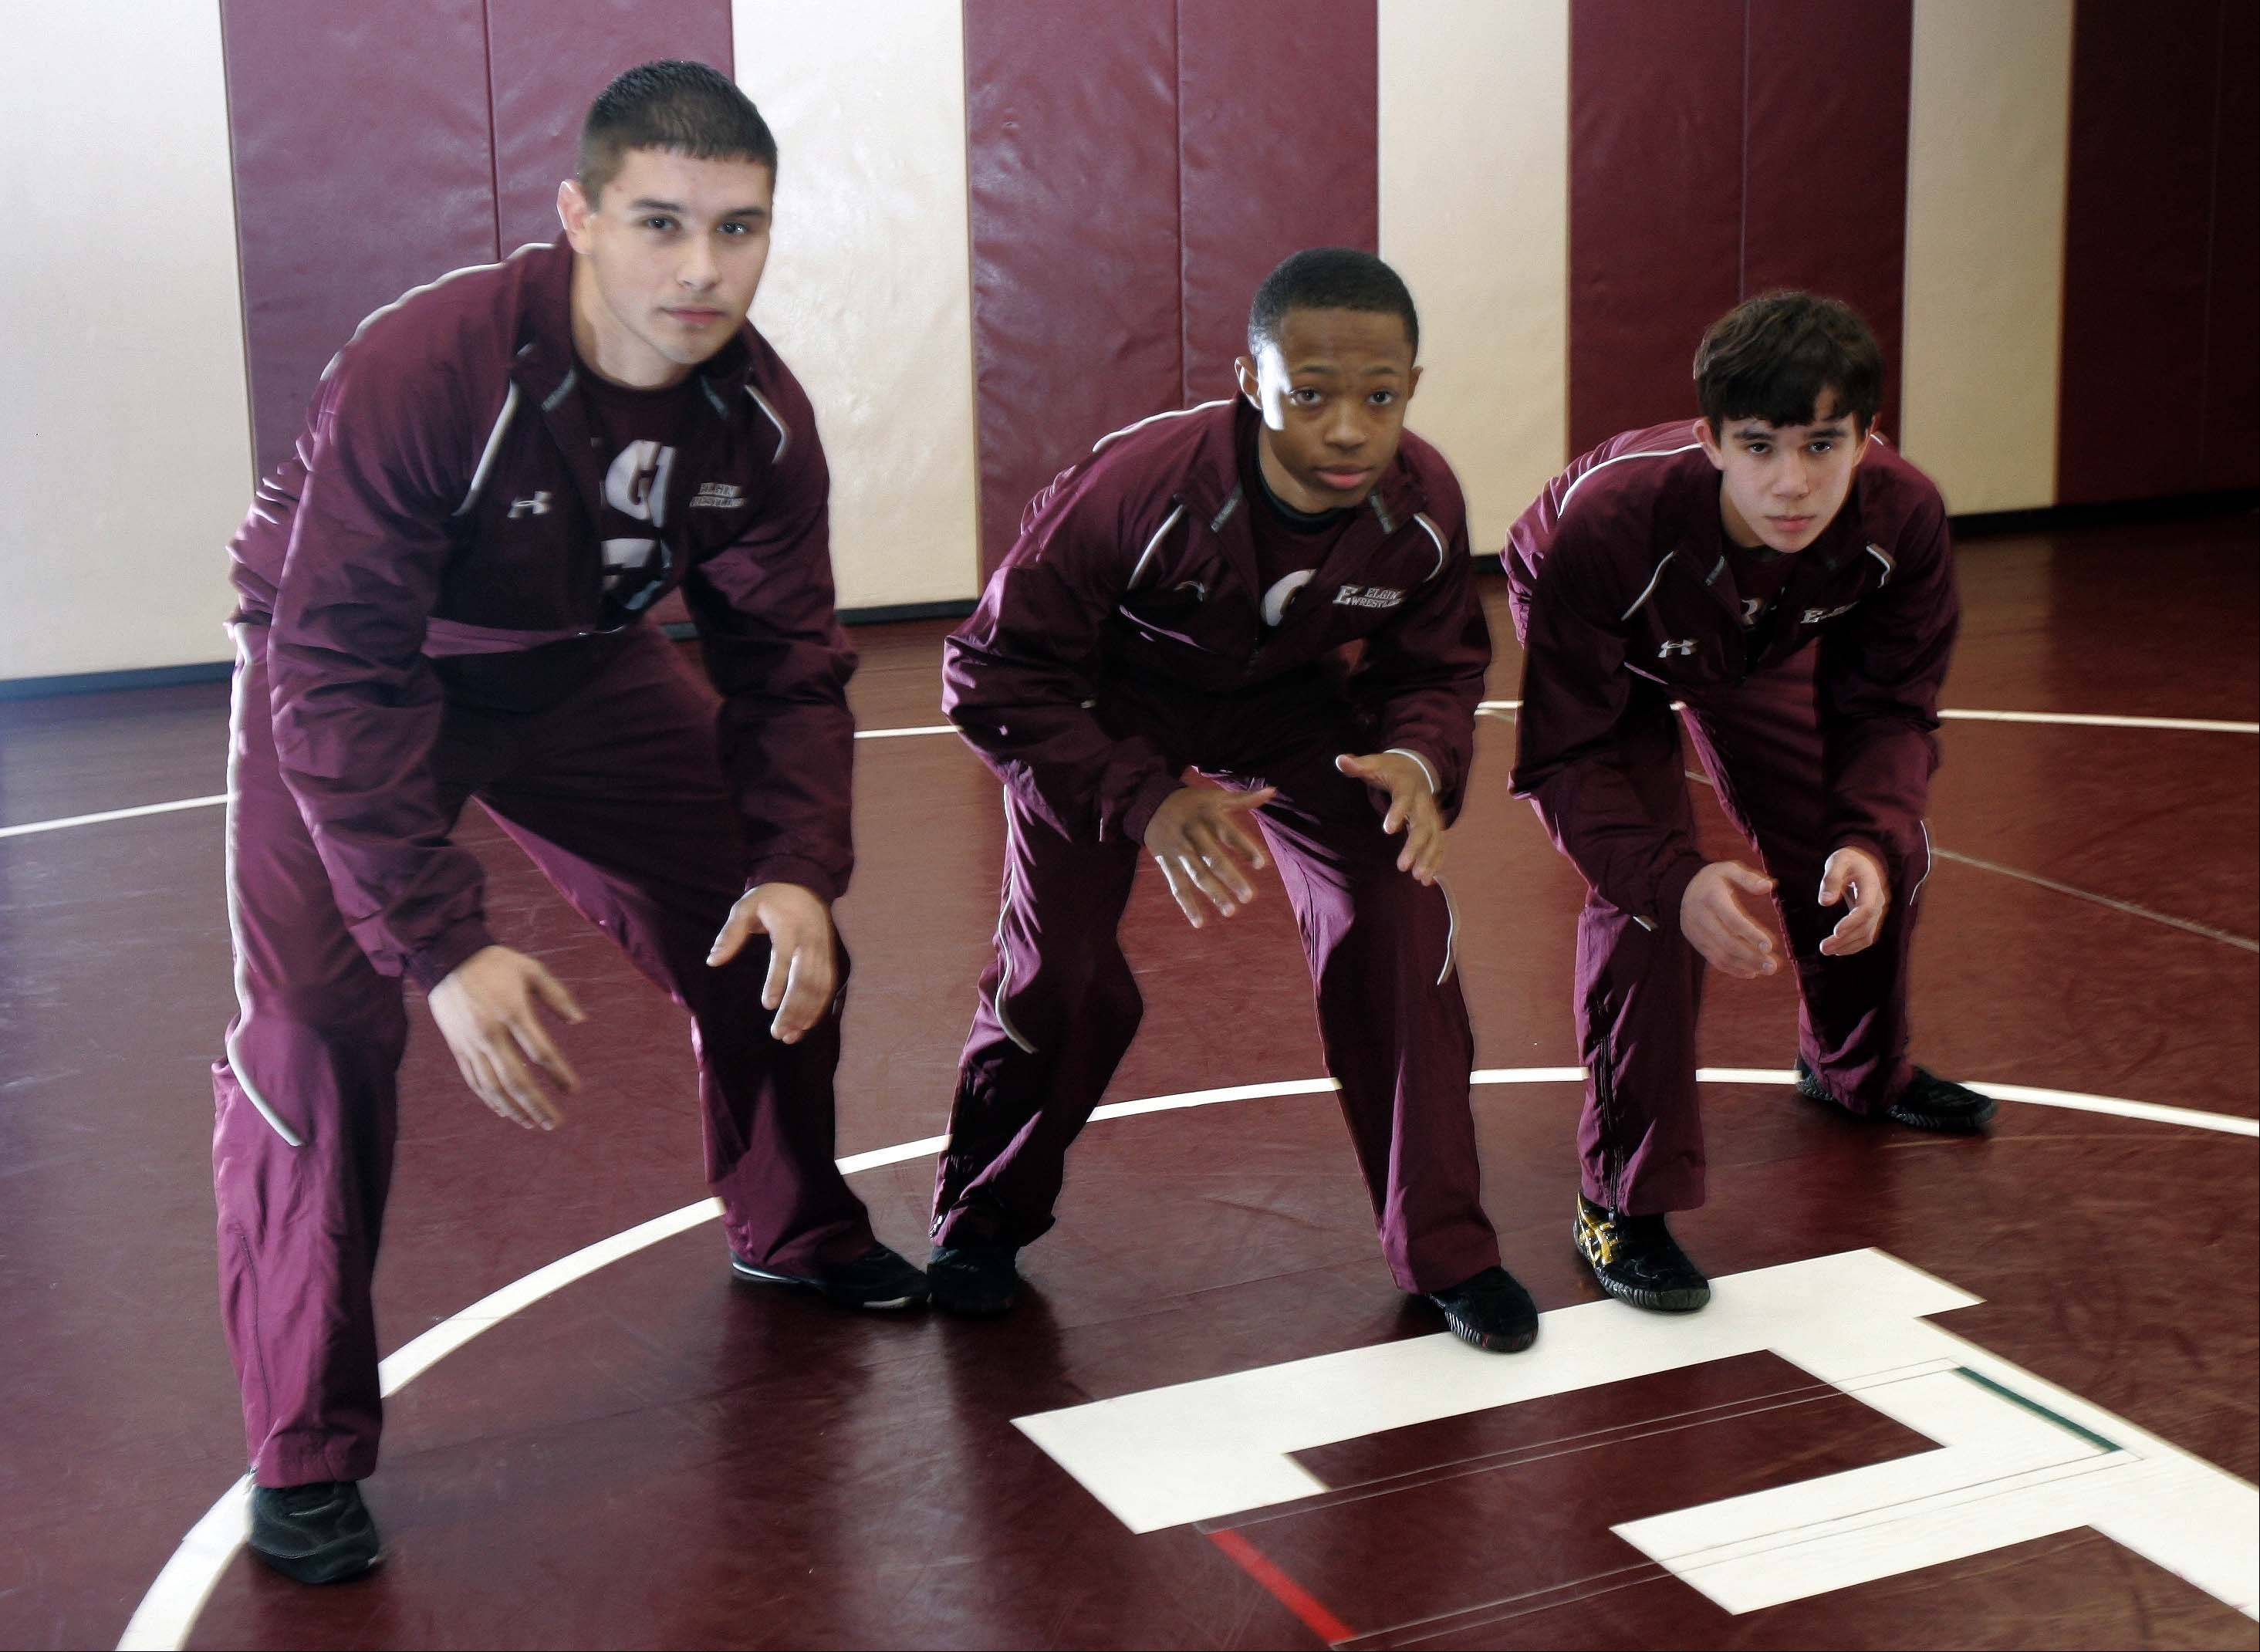 Elgin wrestlers Richie Santana, from left, Jeff Morrow and Zack McCullough have a combined record of 70-5 for the Maroons this season.